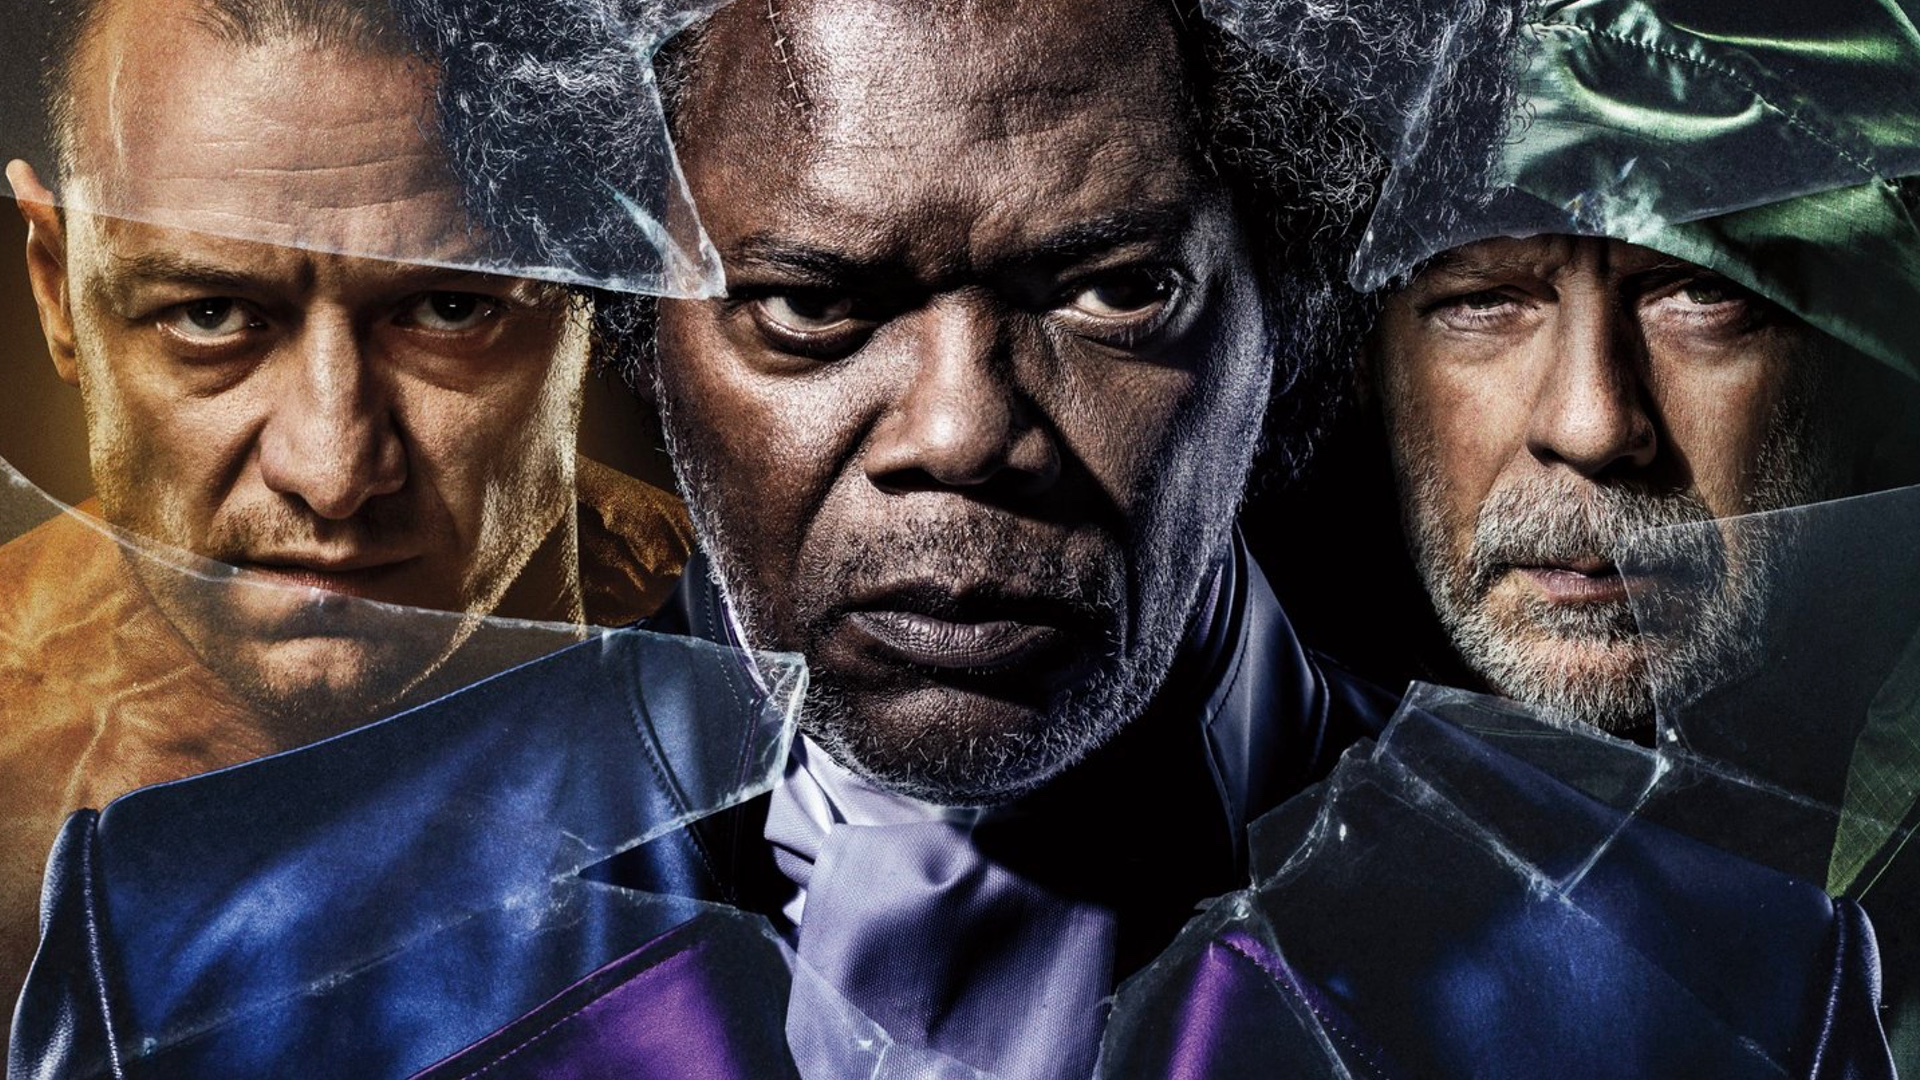 Contest: Win M. Night Shyamalan's GLASS on Blu-ray!